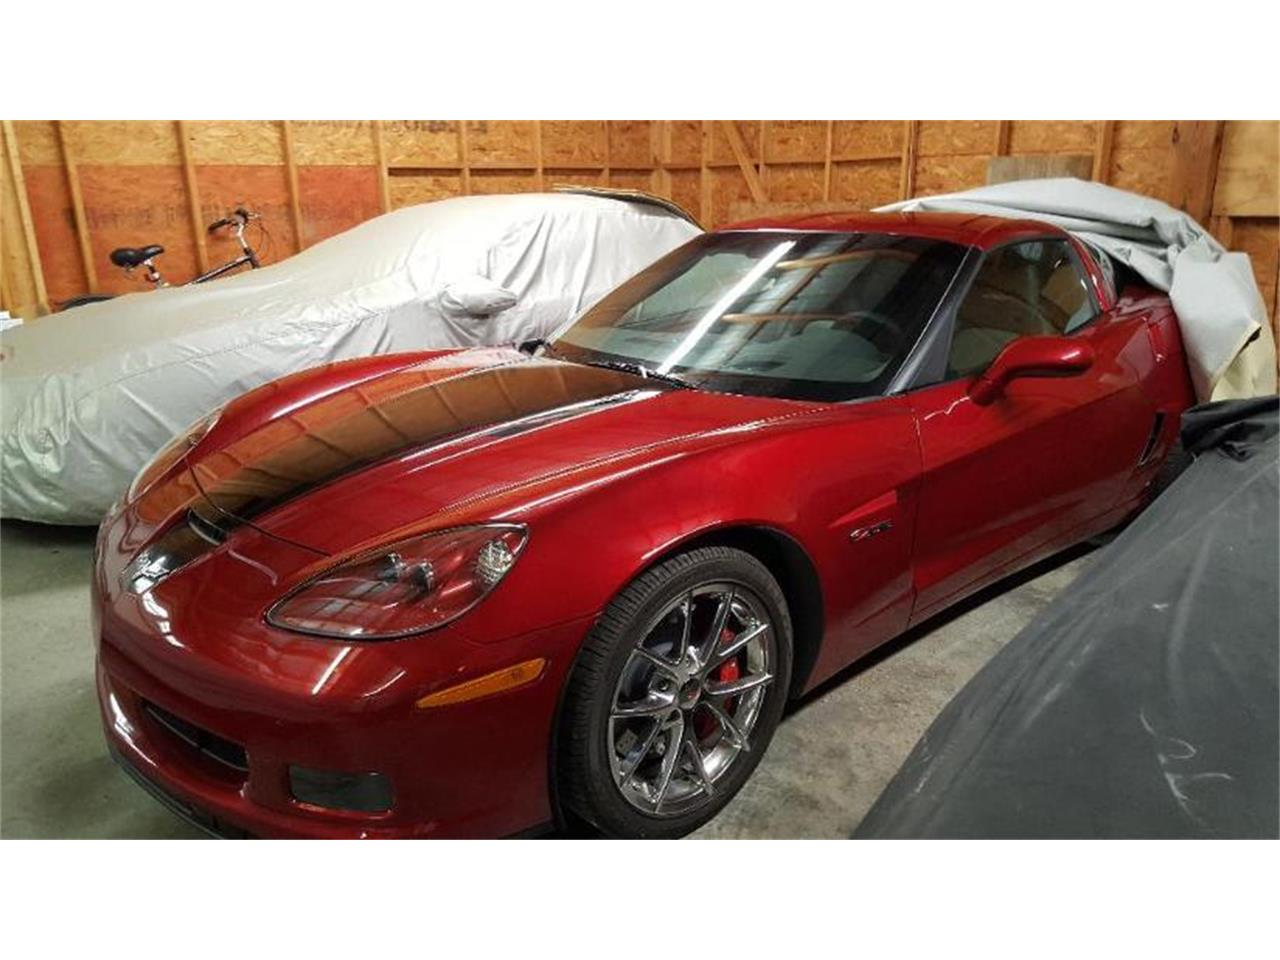 2008 Chevrolet Corvette Z06 (CC-1311278) for sale in Biscoe, North Carolina